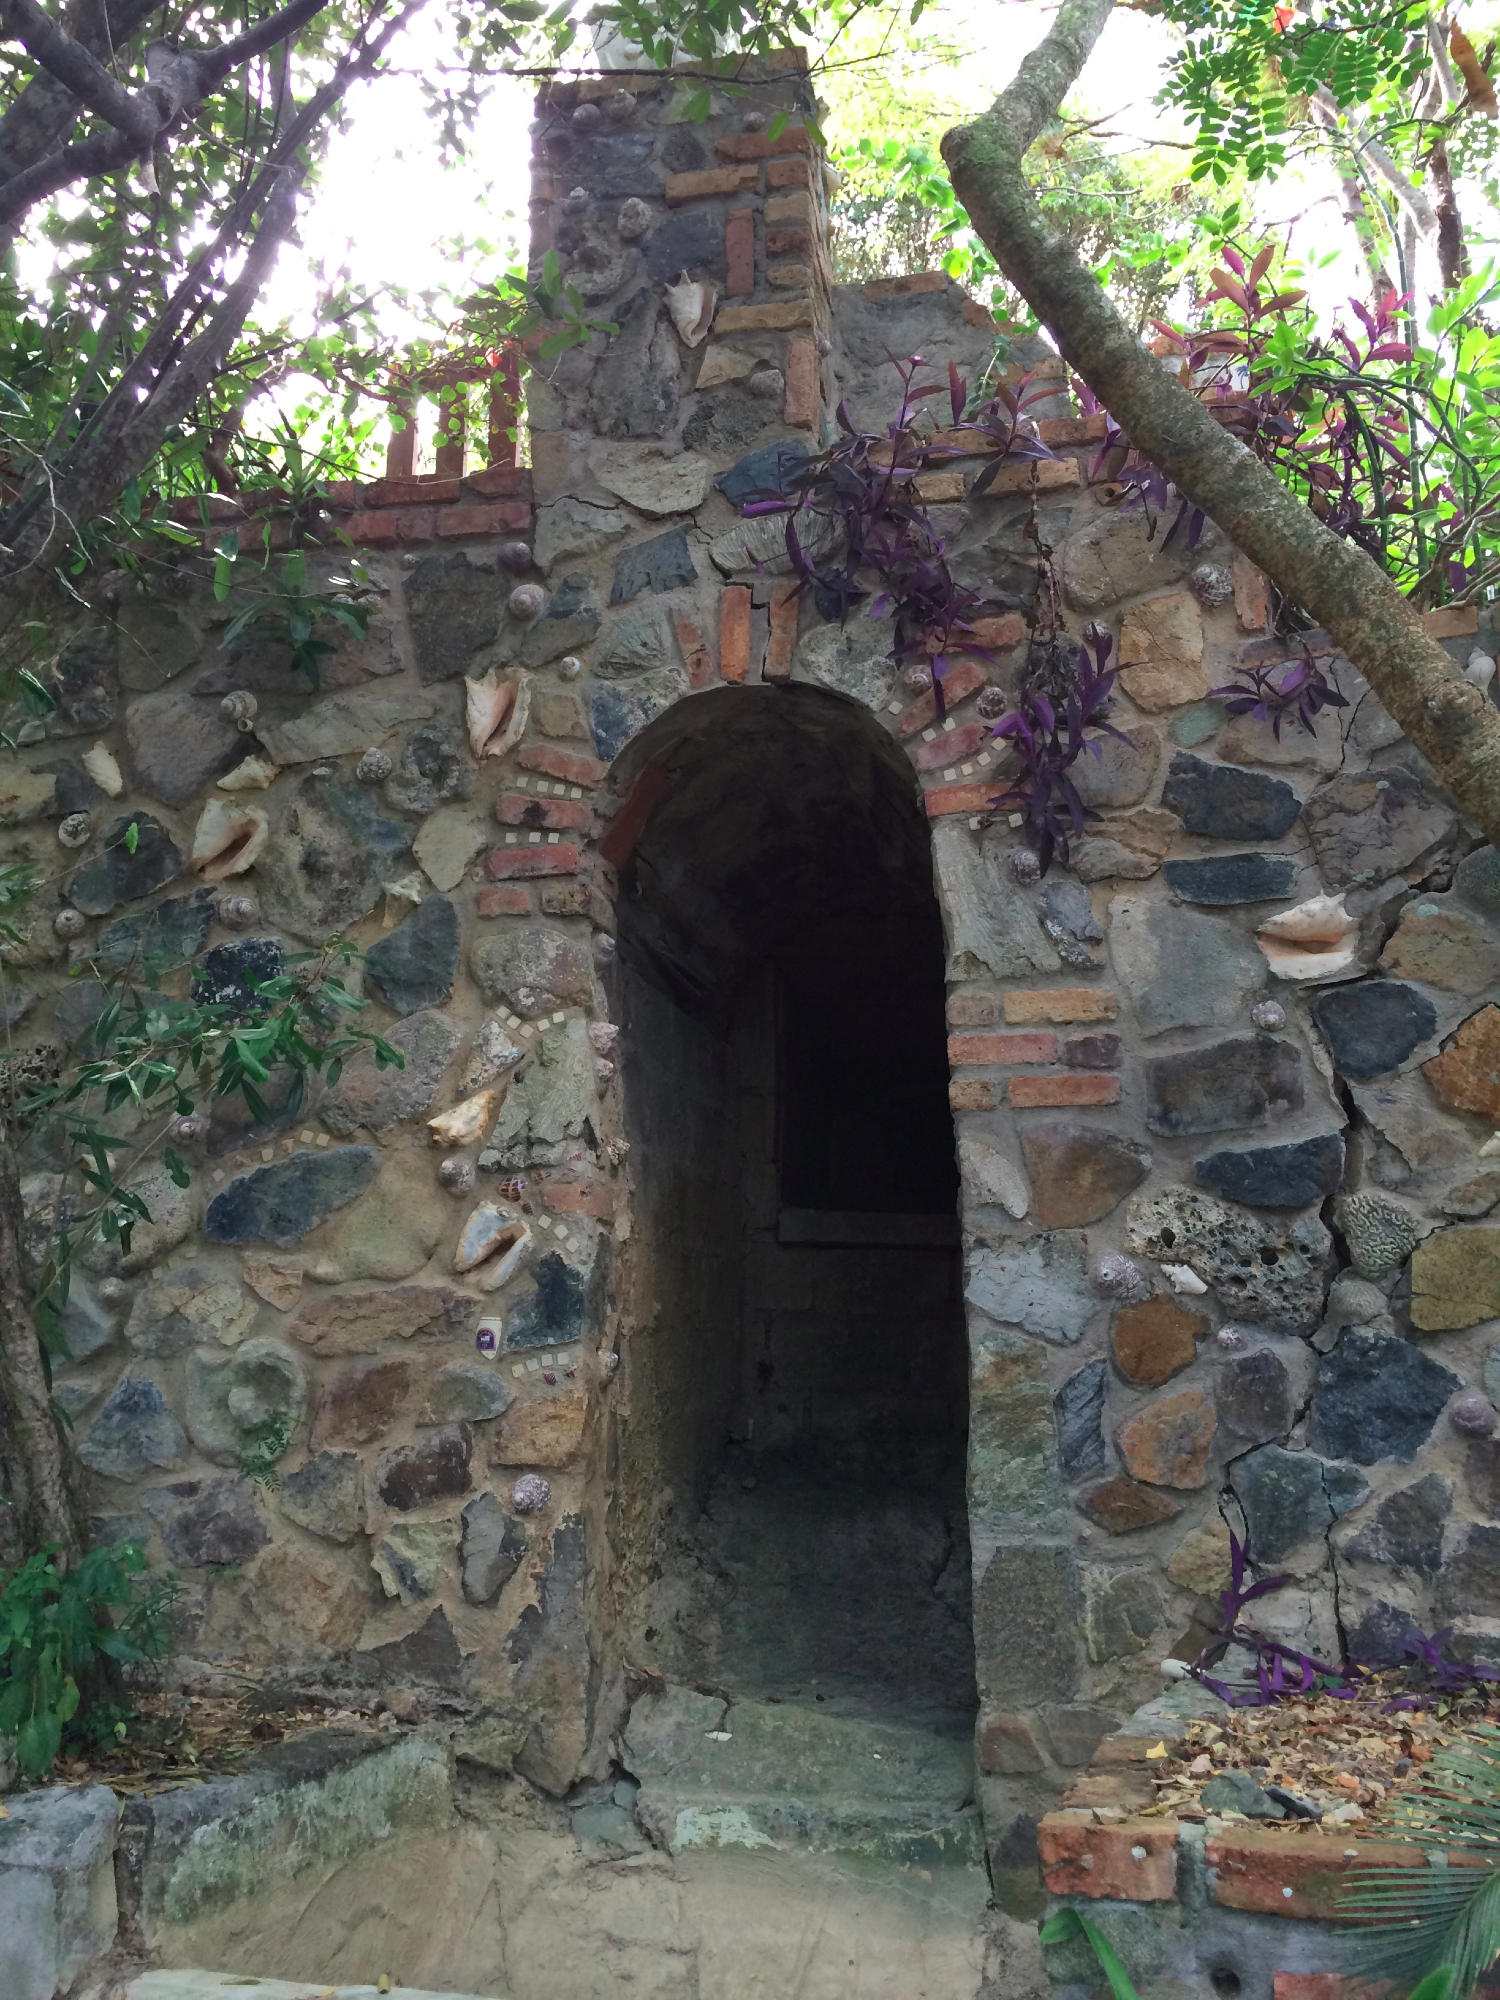 Infracture, stone walls and culverts